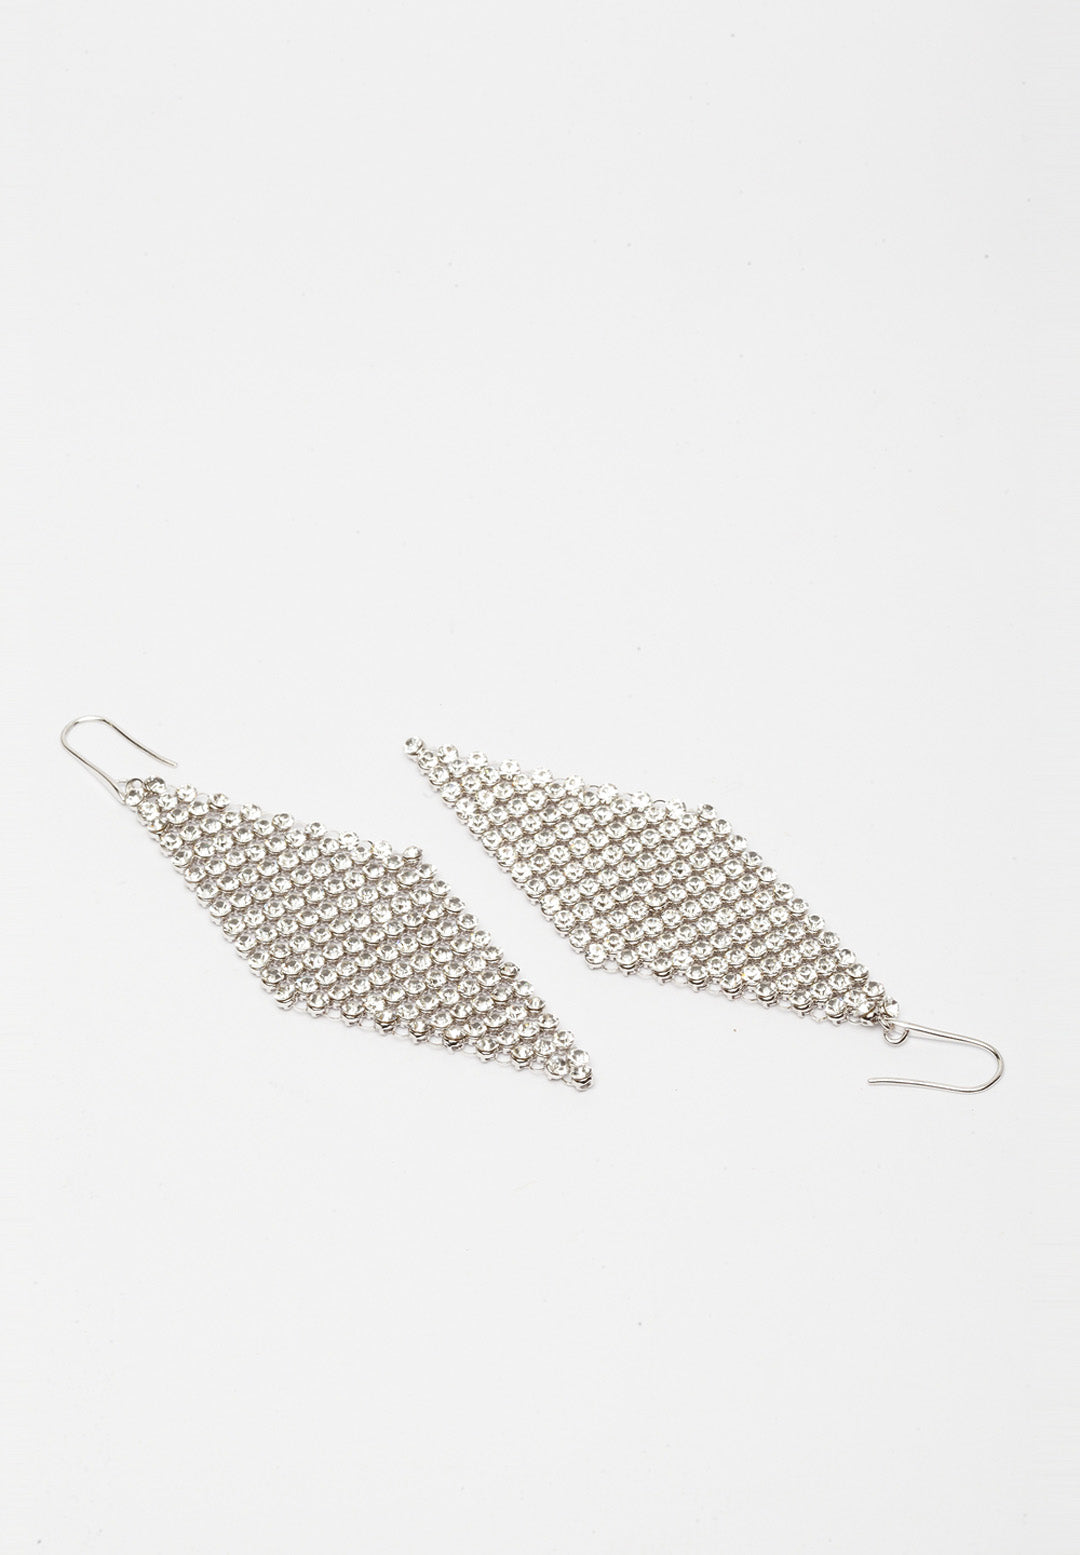 Avant-Garde Paris Crystallized With Swarovski Crystals Mesh Long Earrings